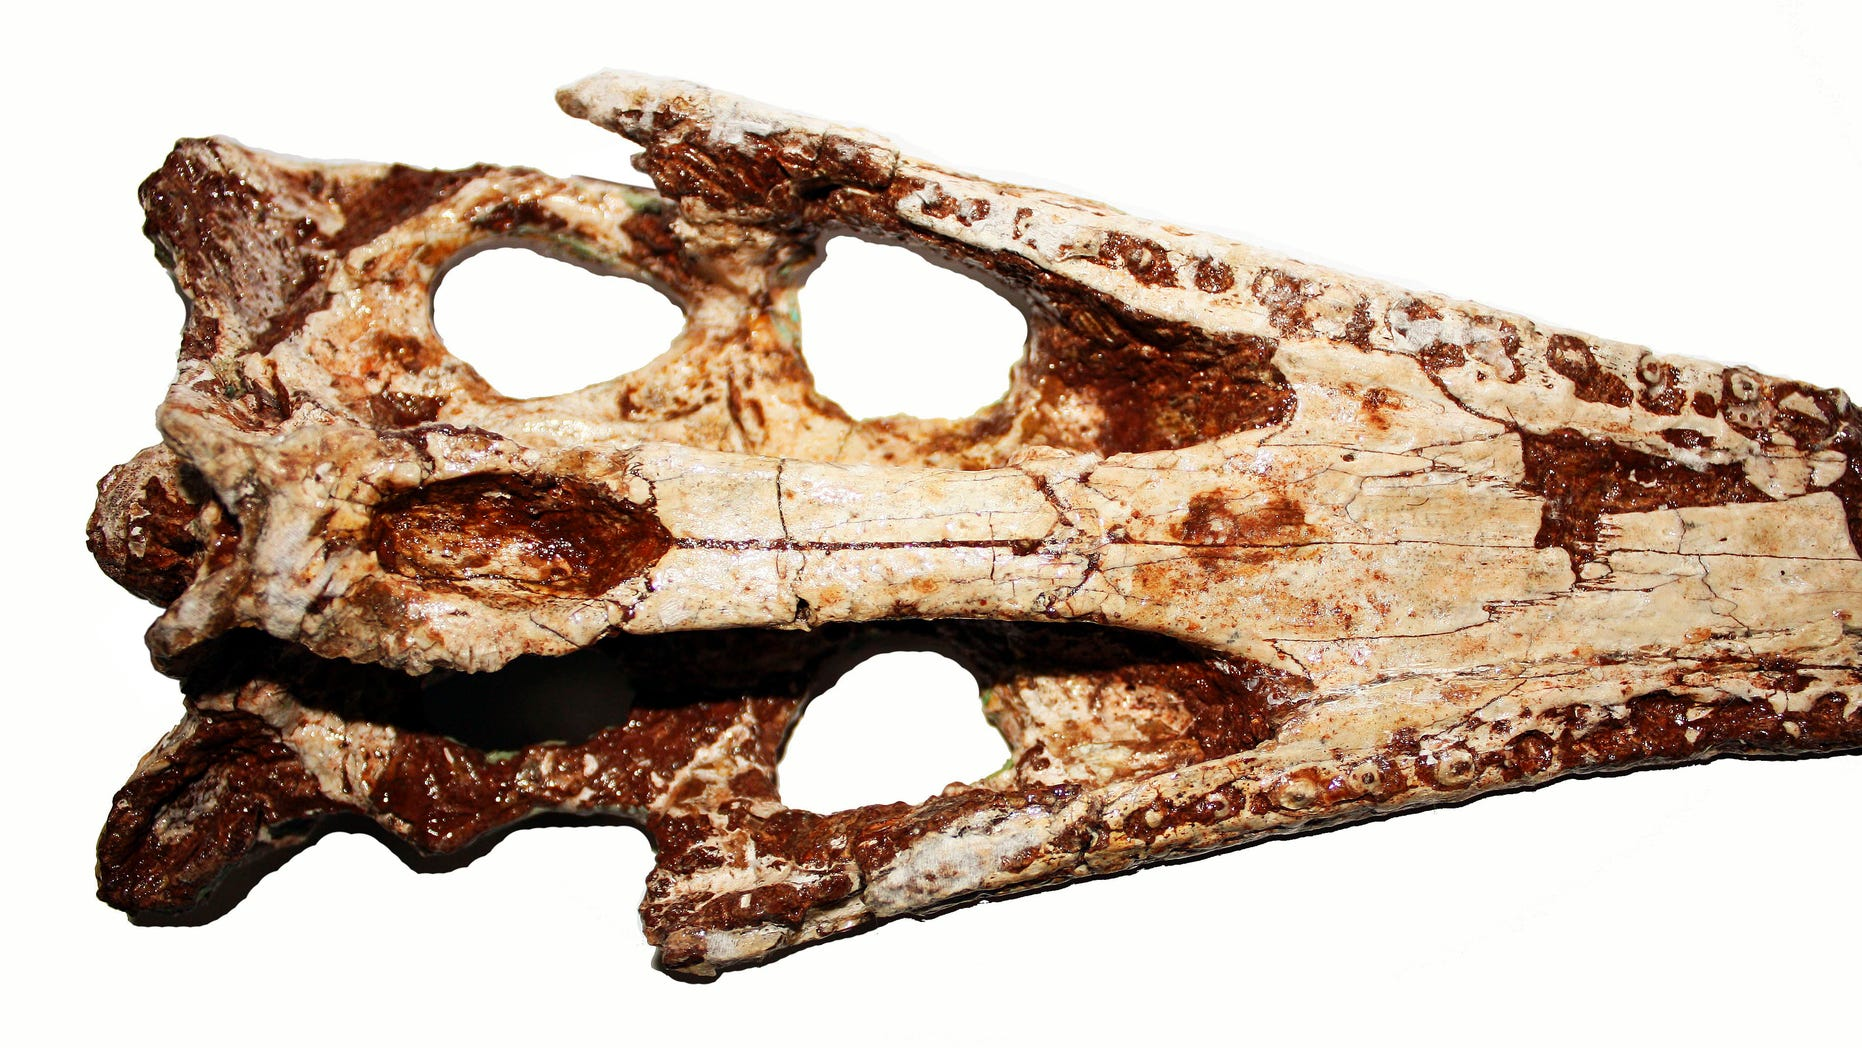 Nov. 25: In this undated photo released during a news conference in Bangkok, Thailand, by the Northeastern Research Institute of Petrified Wood and Mineral Resources, the skull of an ancient crocodile which was dug in Nakhon Ratchasima, northeastern Thailand in 2006, is shown from the top.